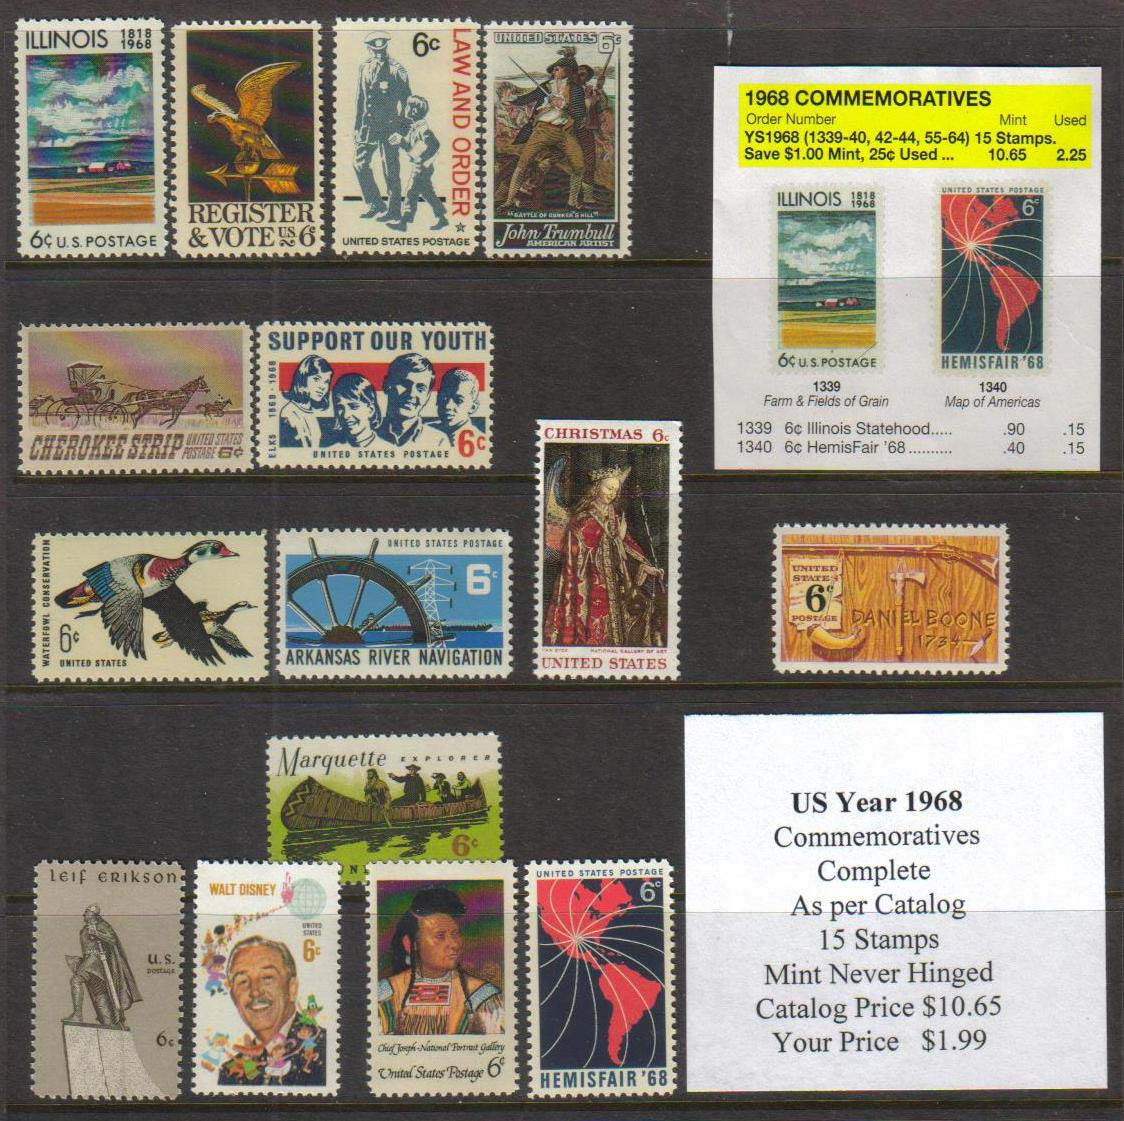 1968 COMMEMORATIVES, 15 STAMPS